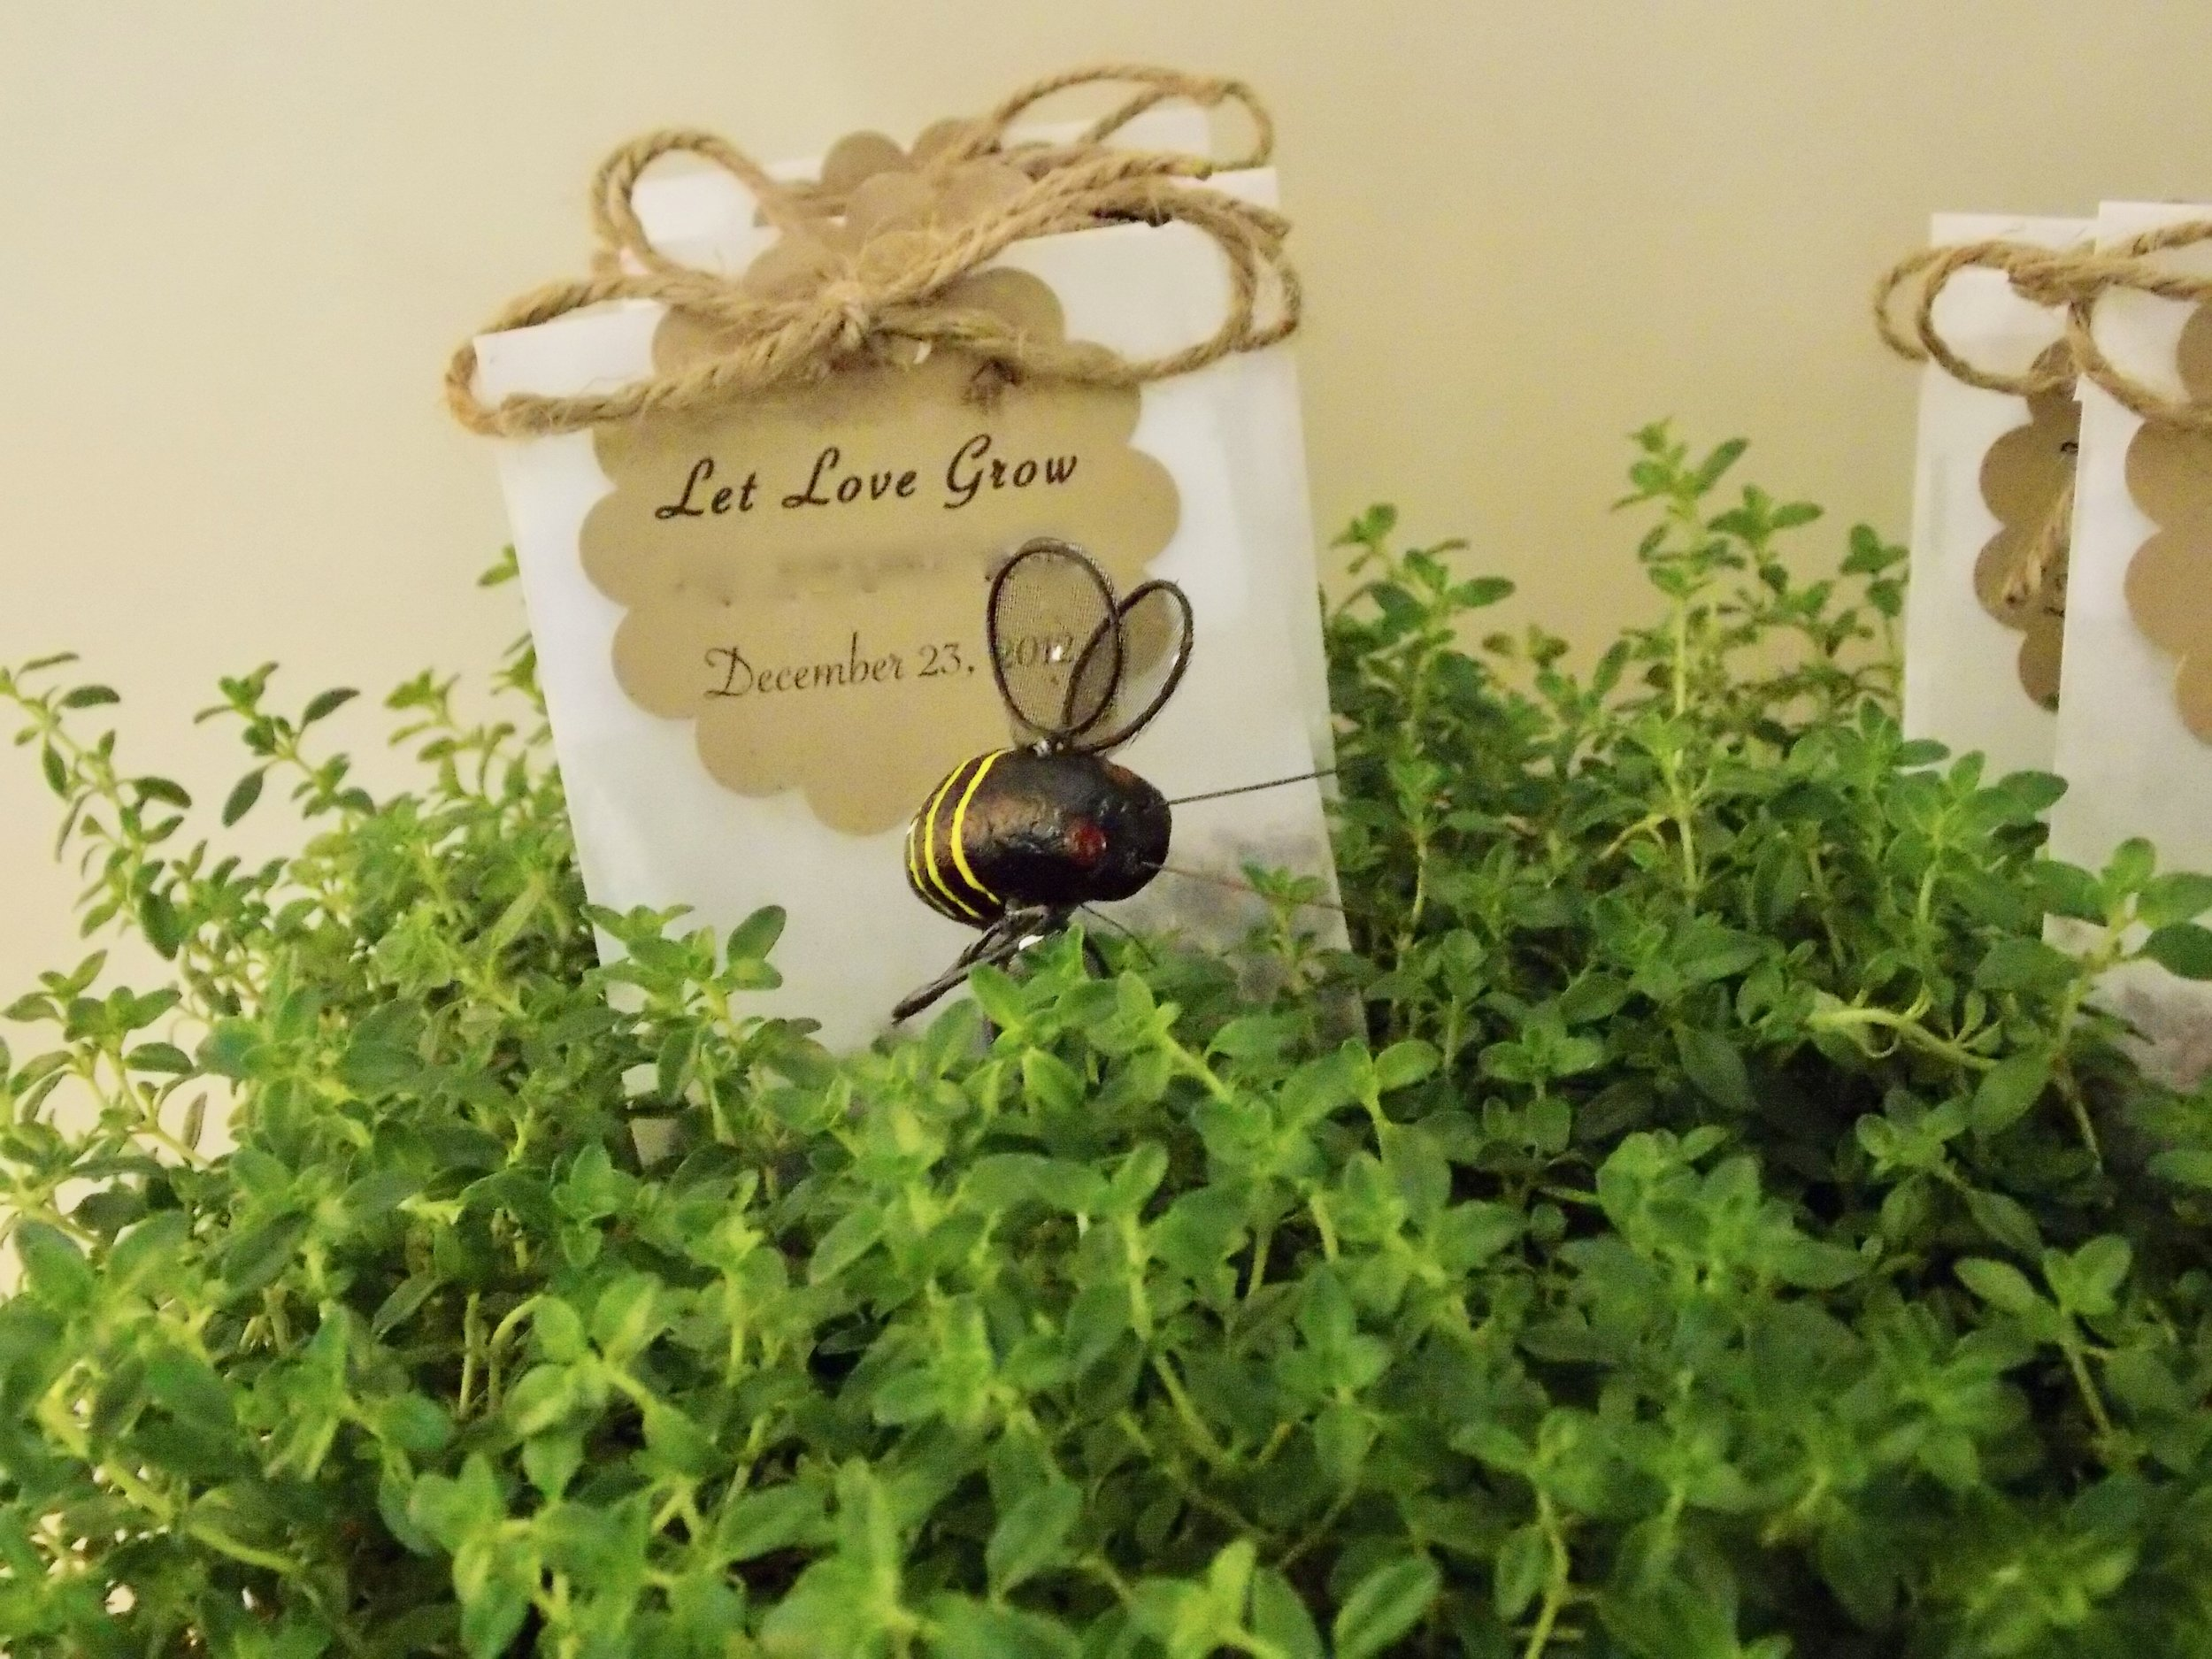 herbs used in garden theme party centerpiece.jpg